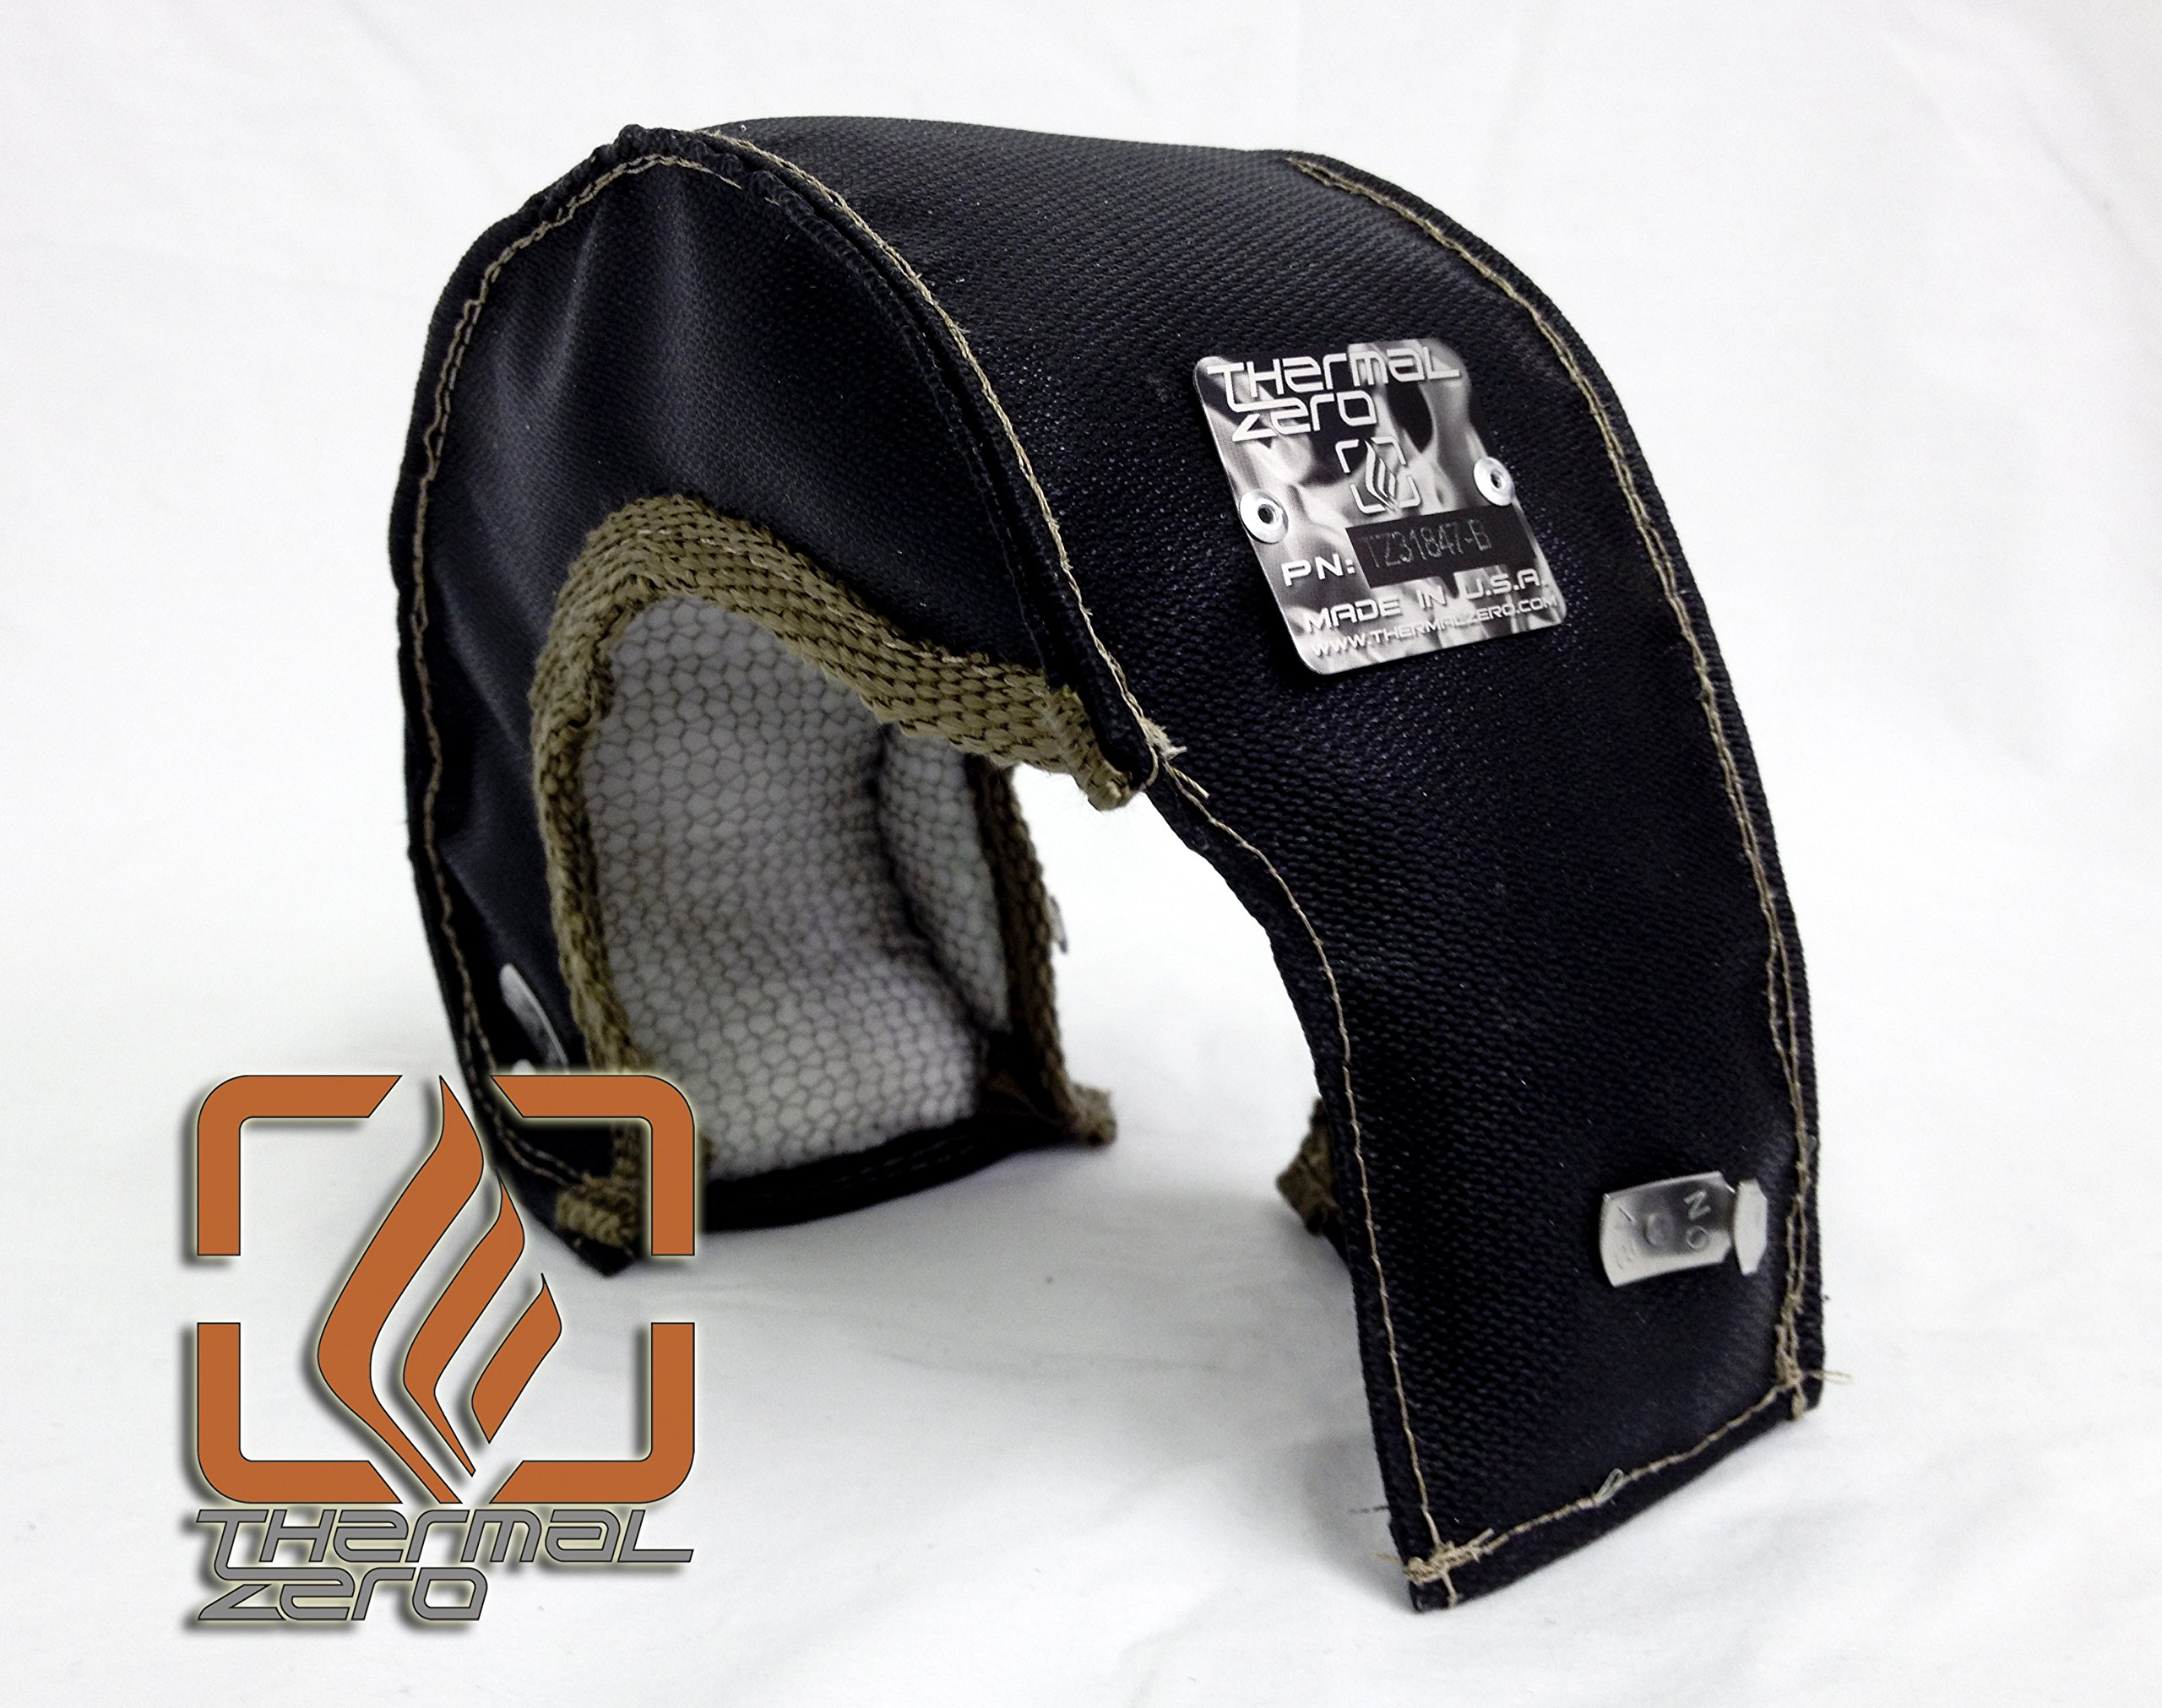 Black T25 T28 T3 Turbo Blanket Holds 2400 degrees. MADE IN USA unlike the rest. Fits most small frame INTERNAL WASTEGATE housings including Garrett, Precision, Turbonetics etc. - TZ31847-B